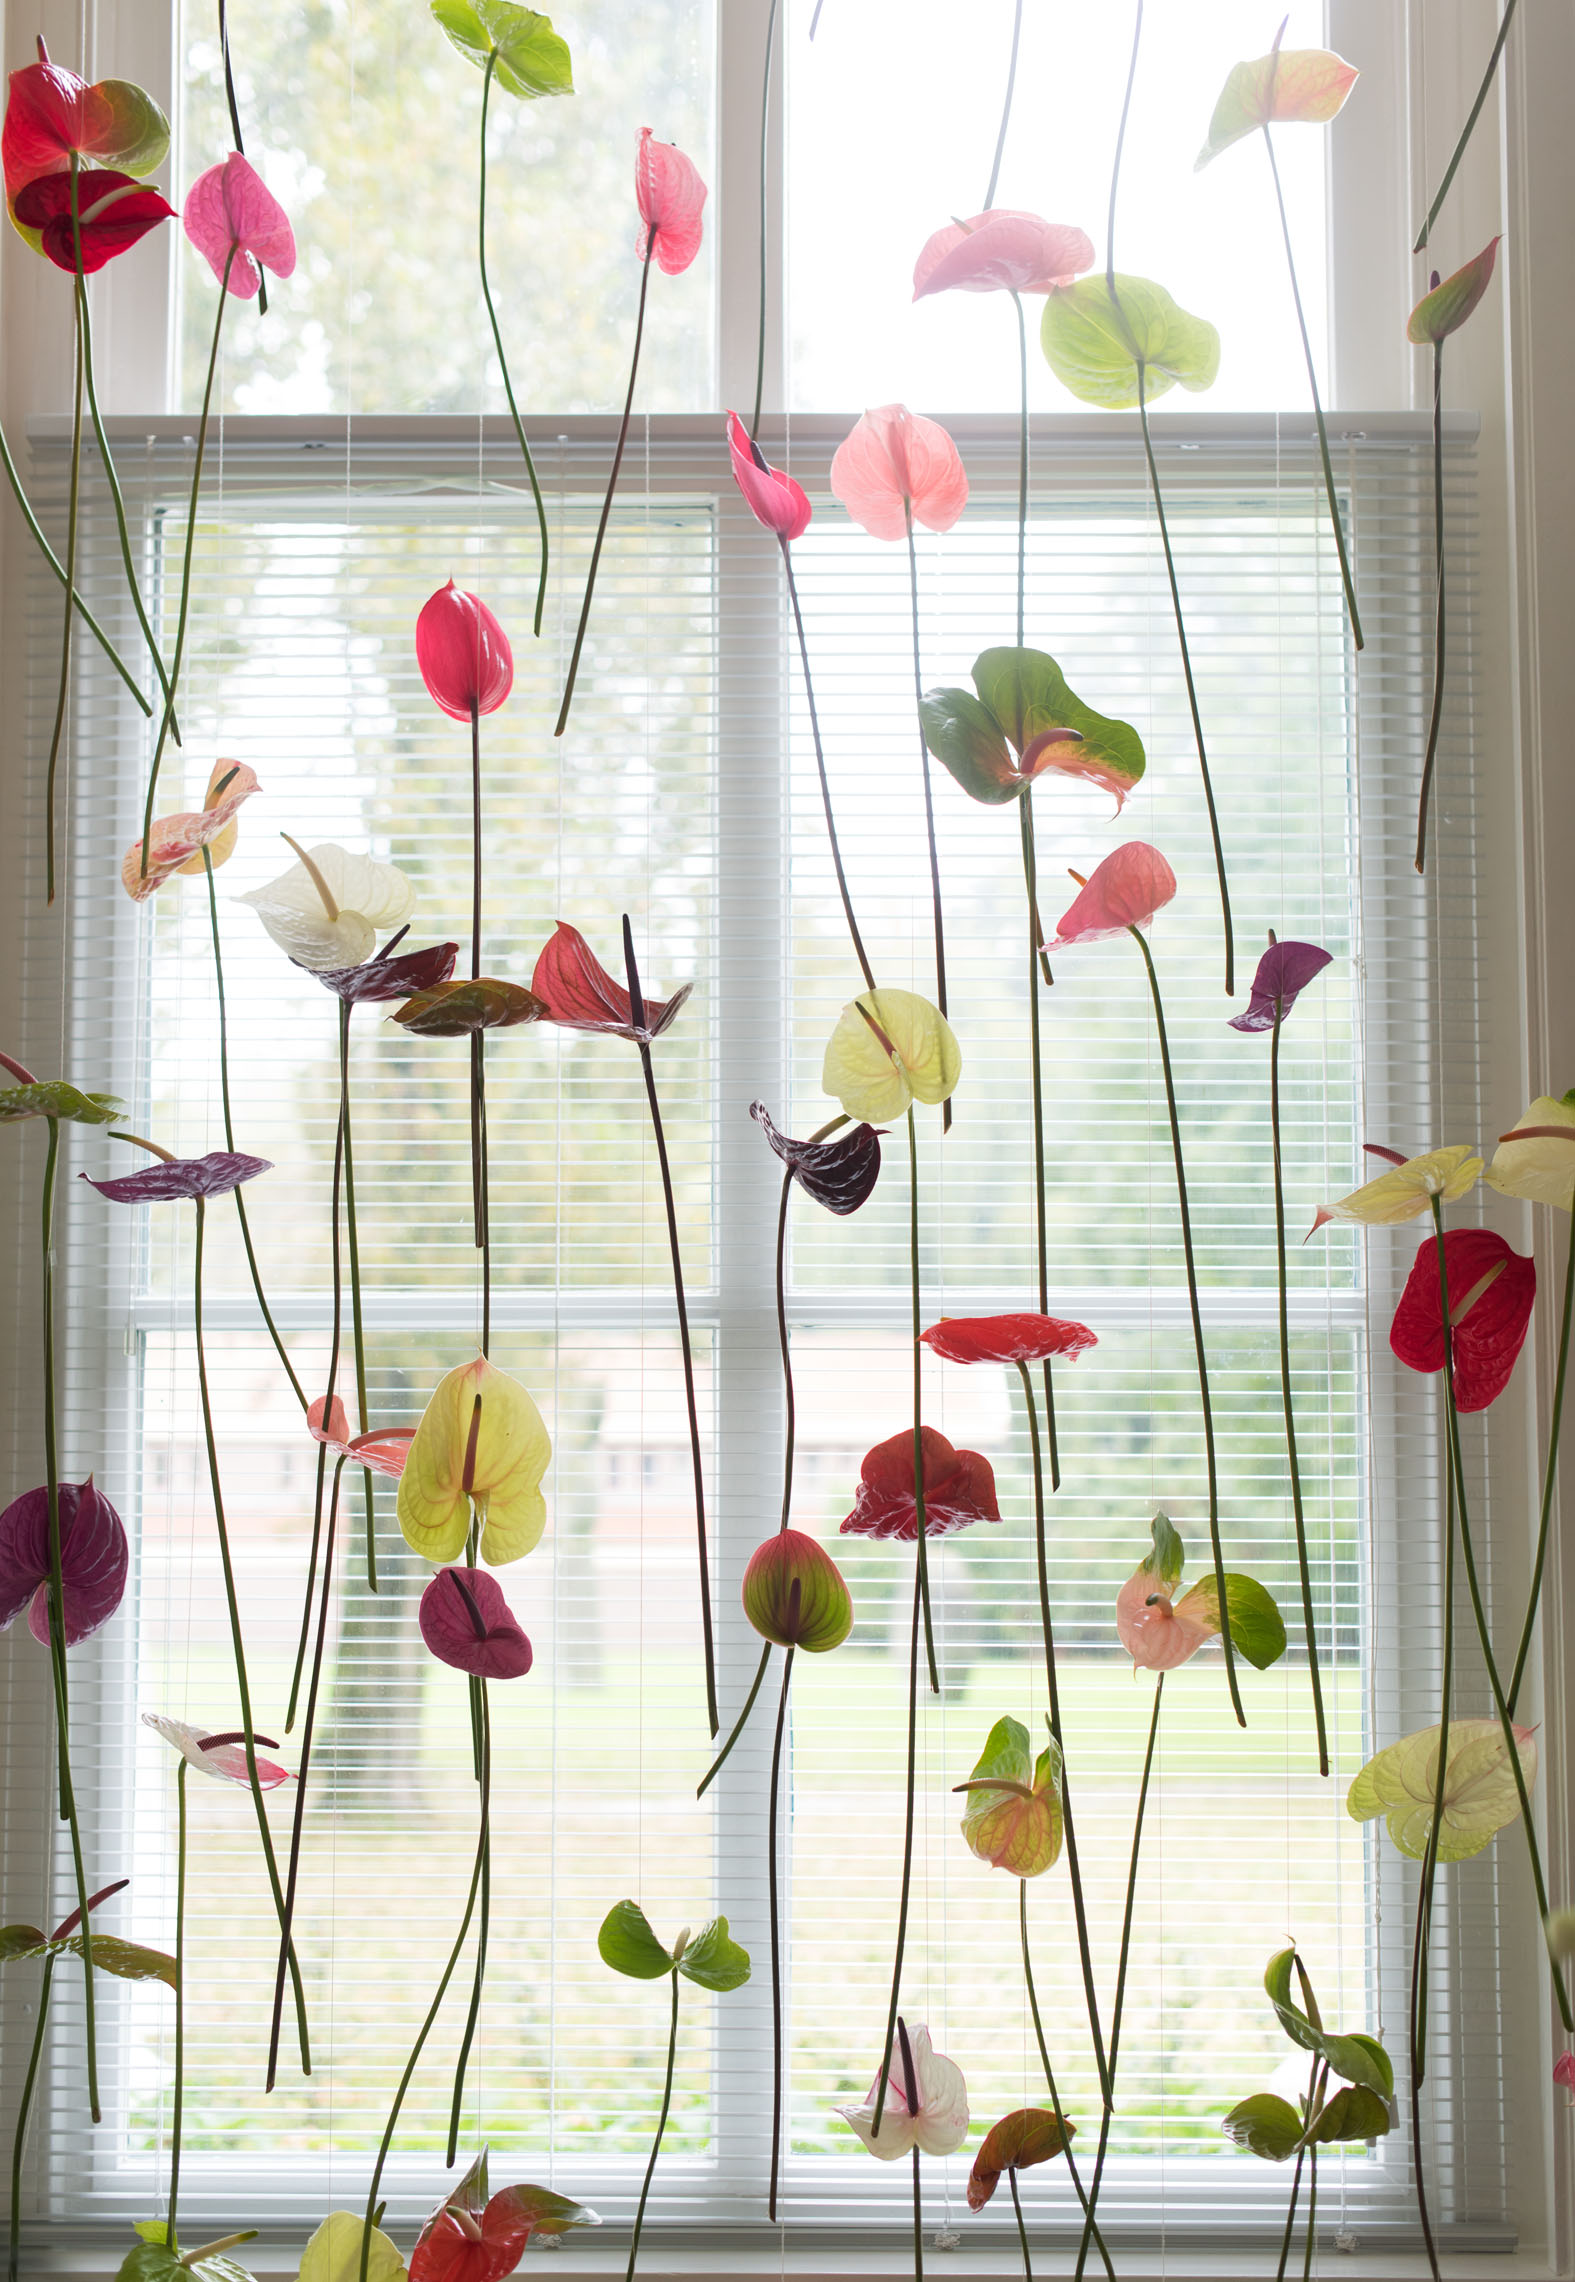 Anthurium curtain window decoration  sc 1 st  Bloomifique & Original window decoration: Anthurium flower curtains - Bloomifique